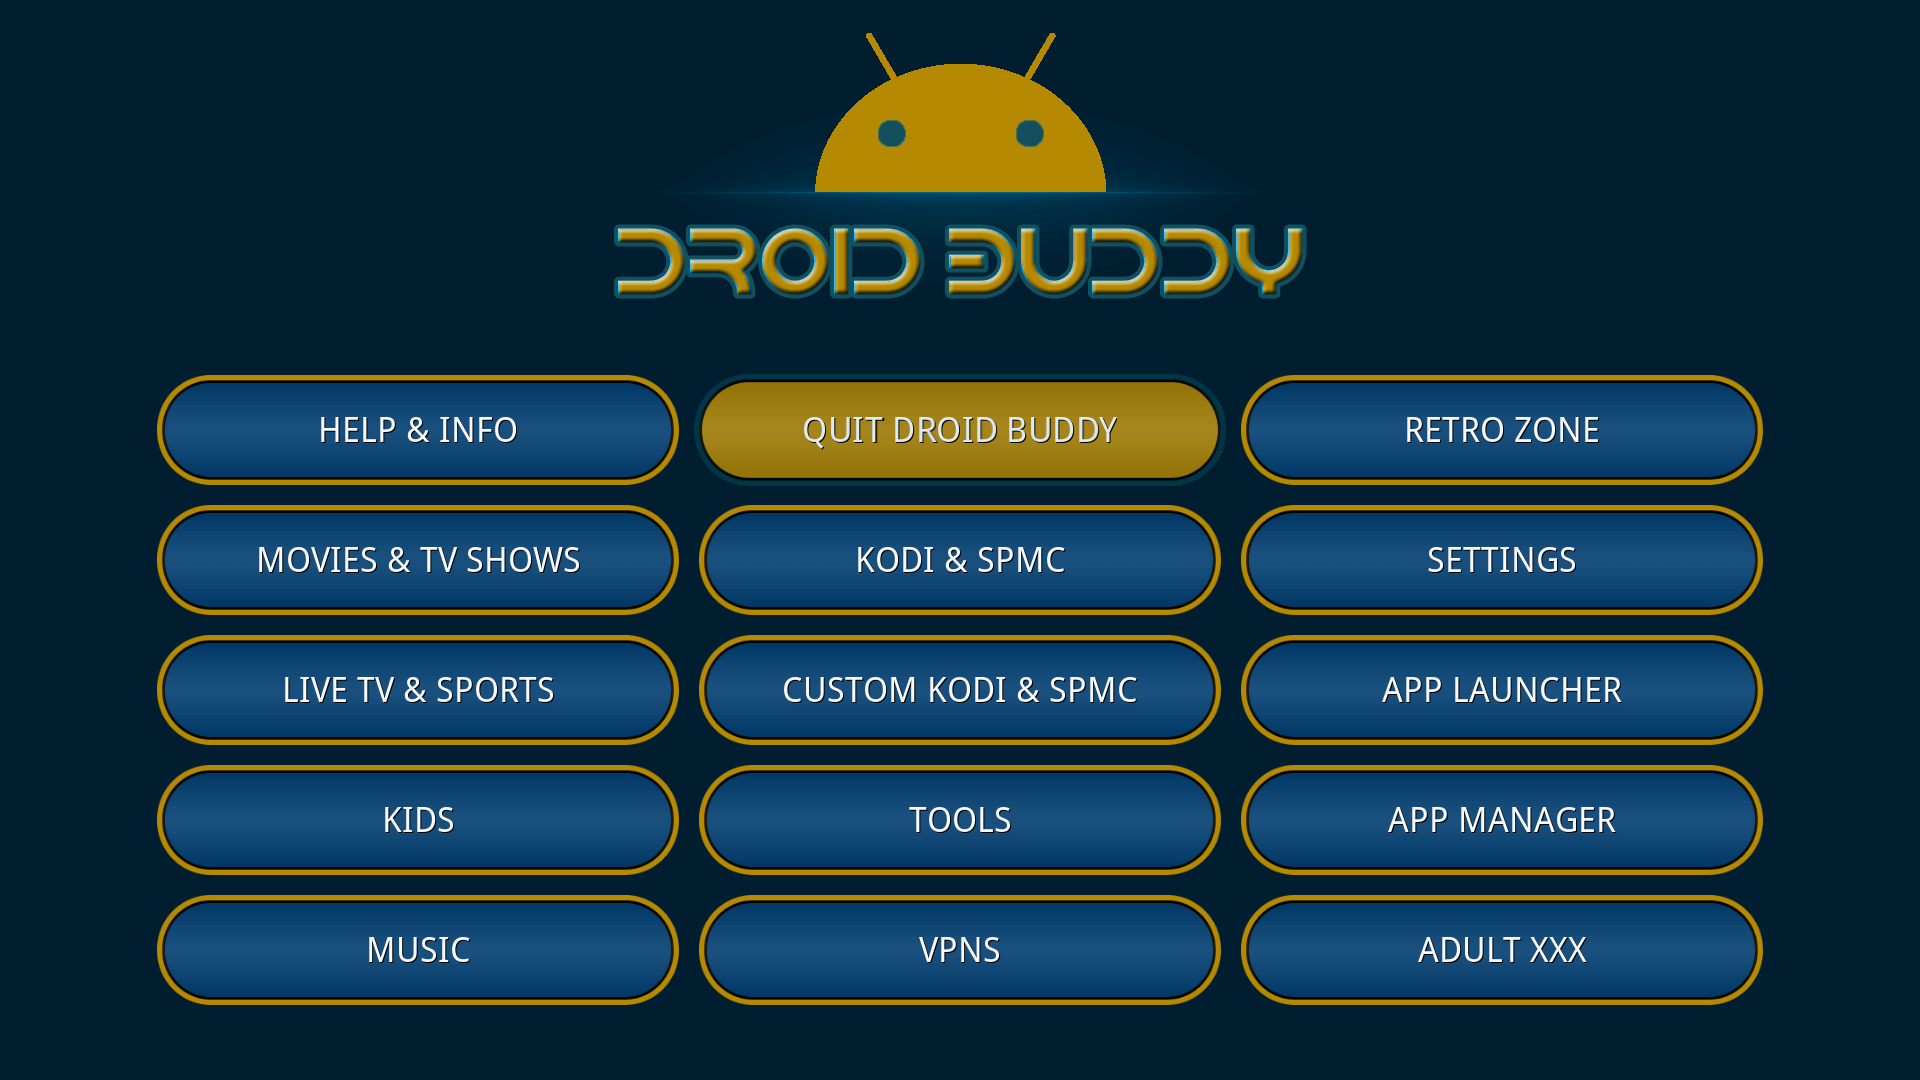 Droid buddy 2 apk 2018 | Droid Buddy Apk Free Download For Android